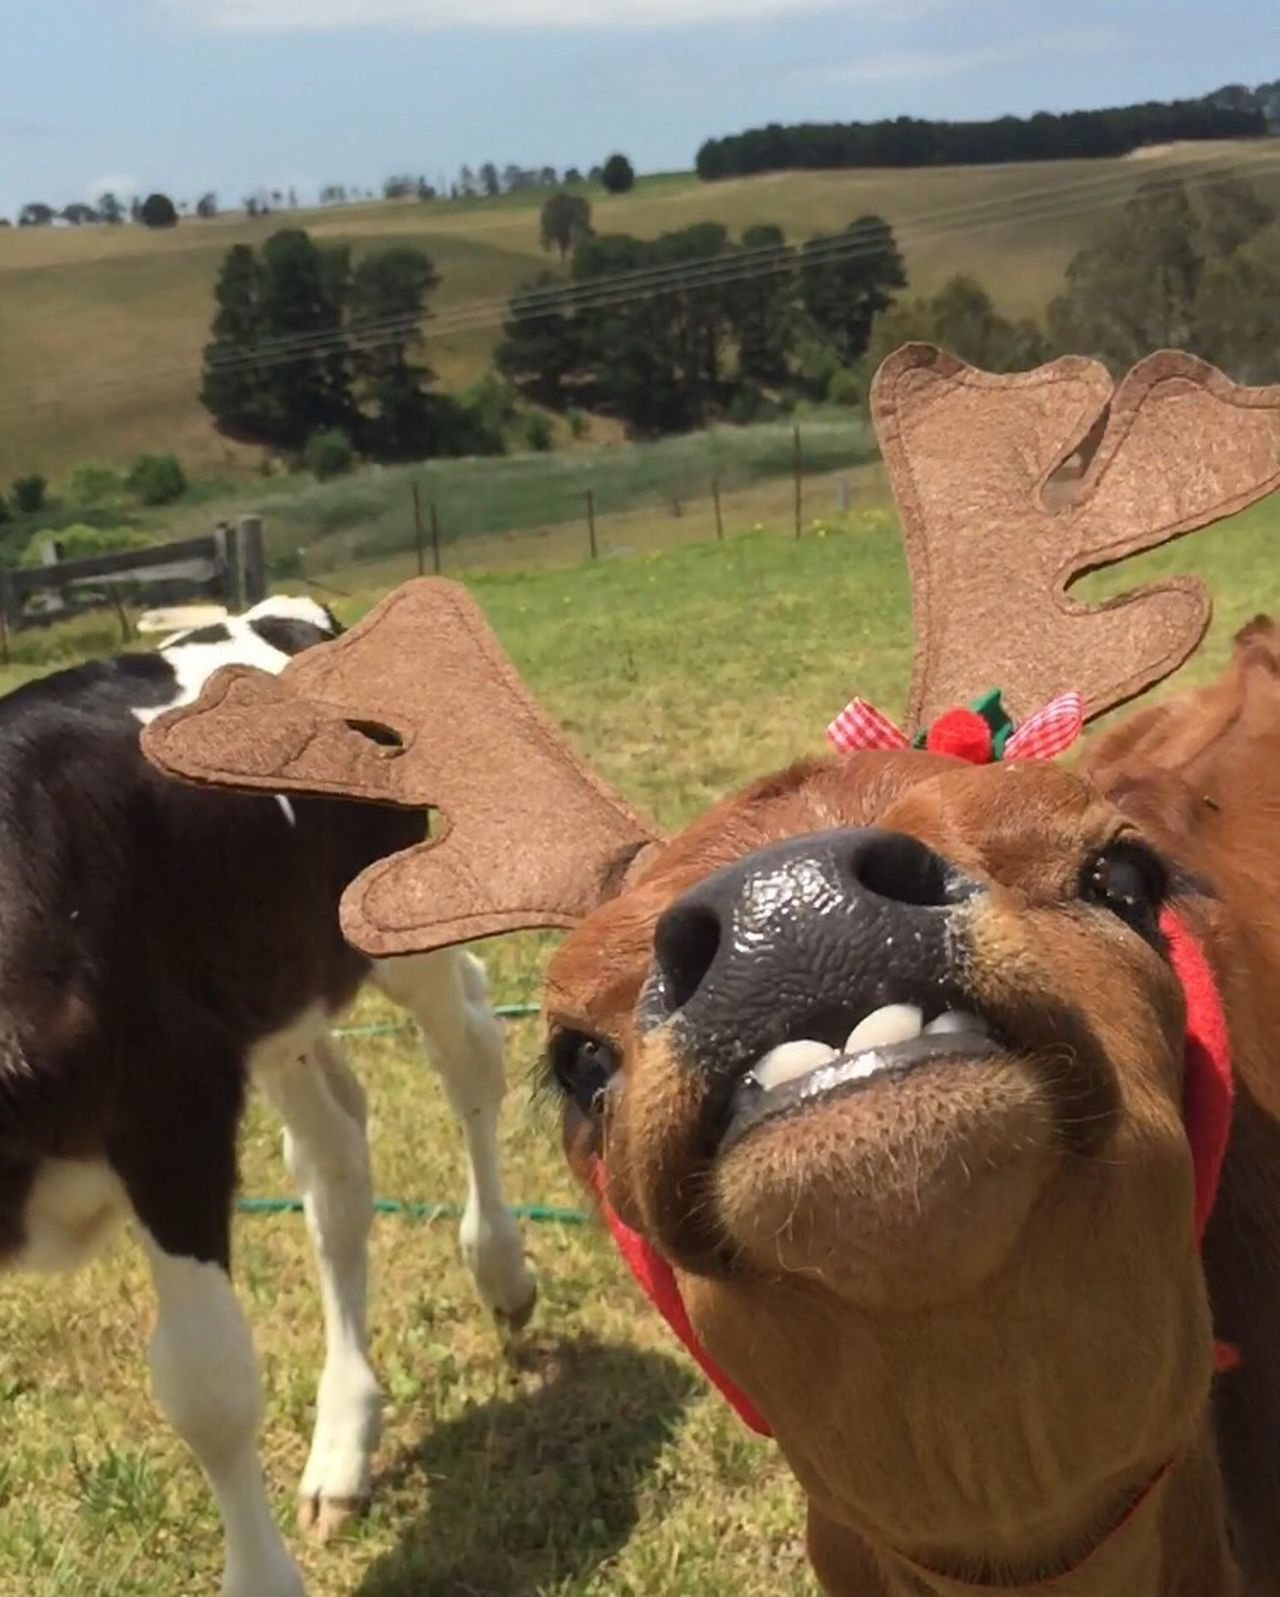 My baby cows reindeer impersonation 😂😂 Merry Christmas 🎄 to all my followers and likers🎄 may 2017 be kind to you all 😁 Animal Themes One Animal Livestock Domestic Animals Outdoors No People Check This Out Capture The Moment Cow Poddycalf Reindeer In Disguise